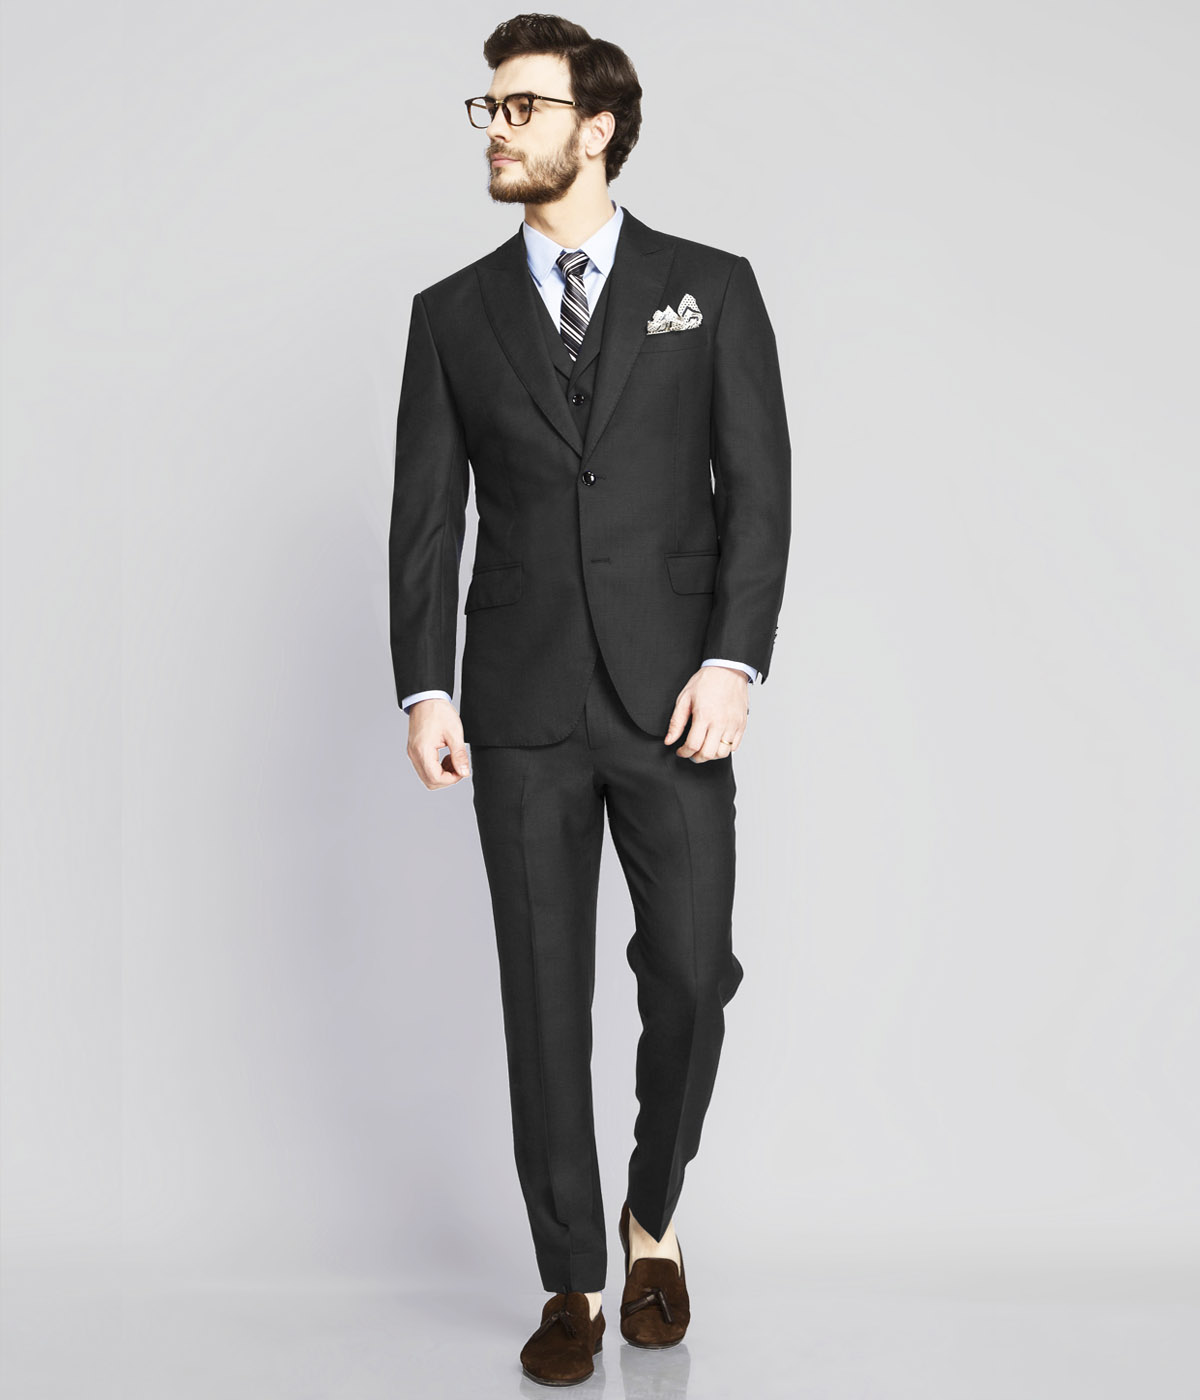 Tribeca Charcoal Birdseye Suit-mbview-1